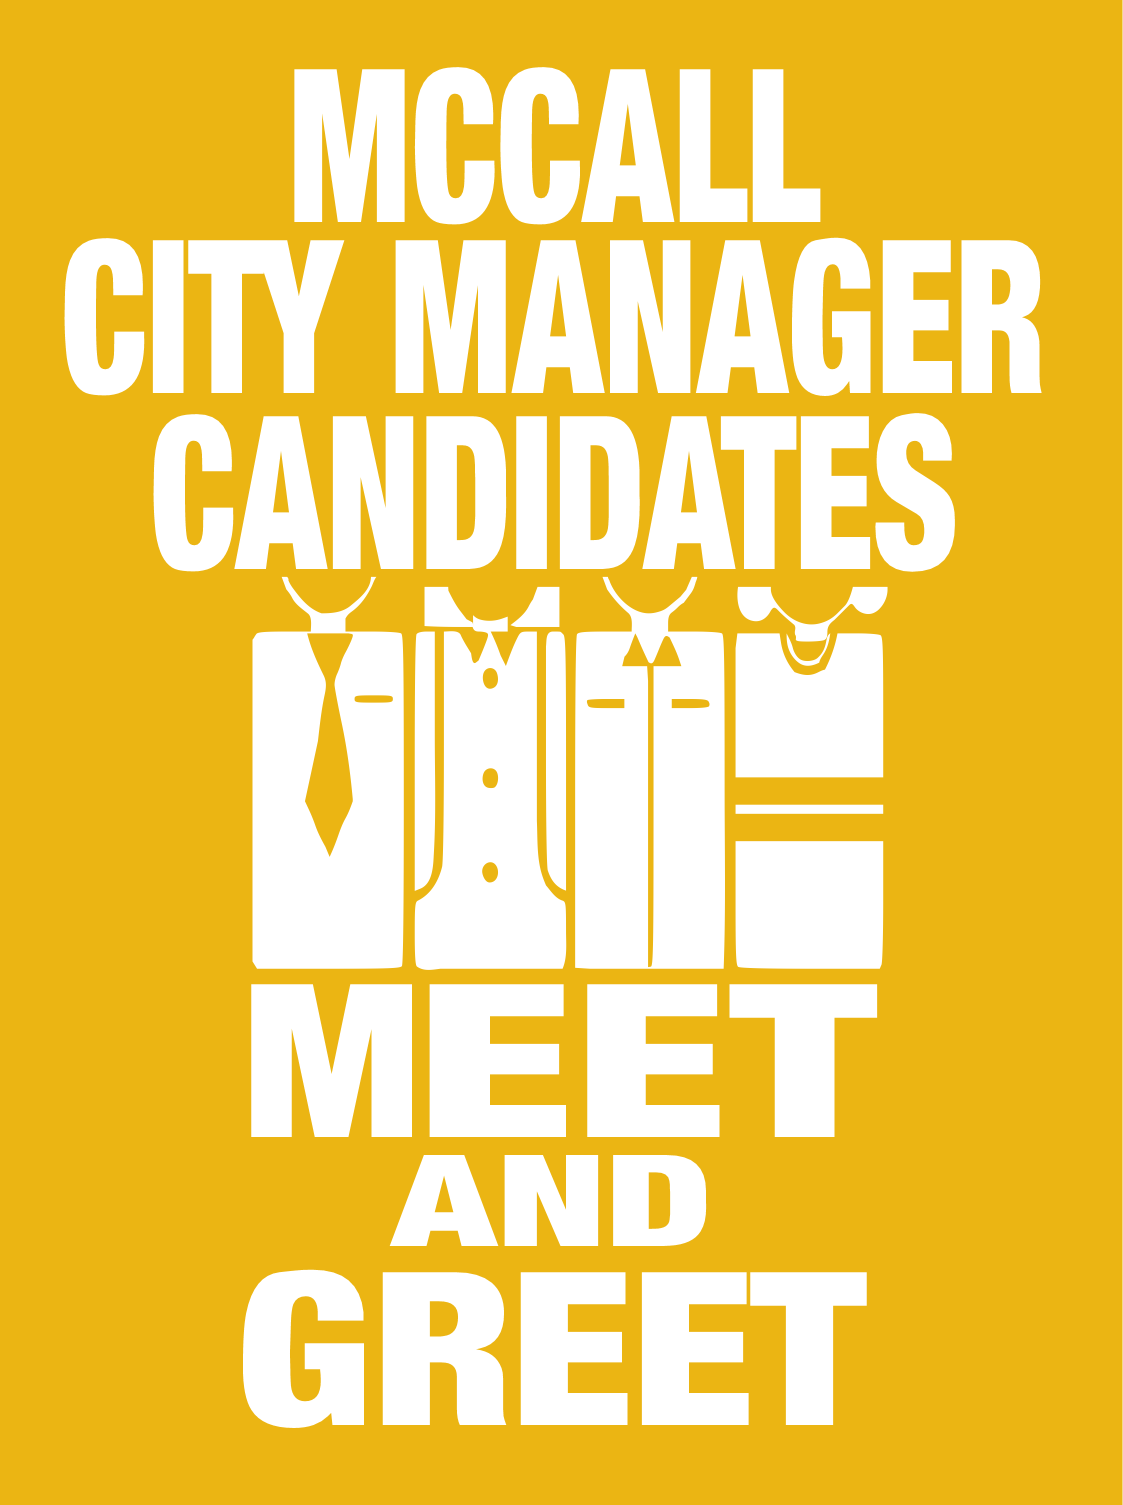 Three finalists for the city manager available for meet and greet three finalists for the city manager available for meet and greet dec 7th kristyandbryce Gallery